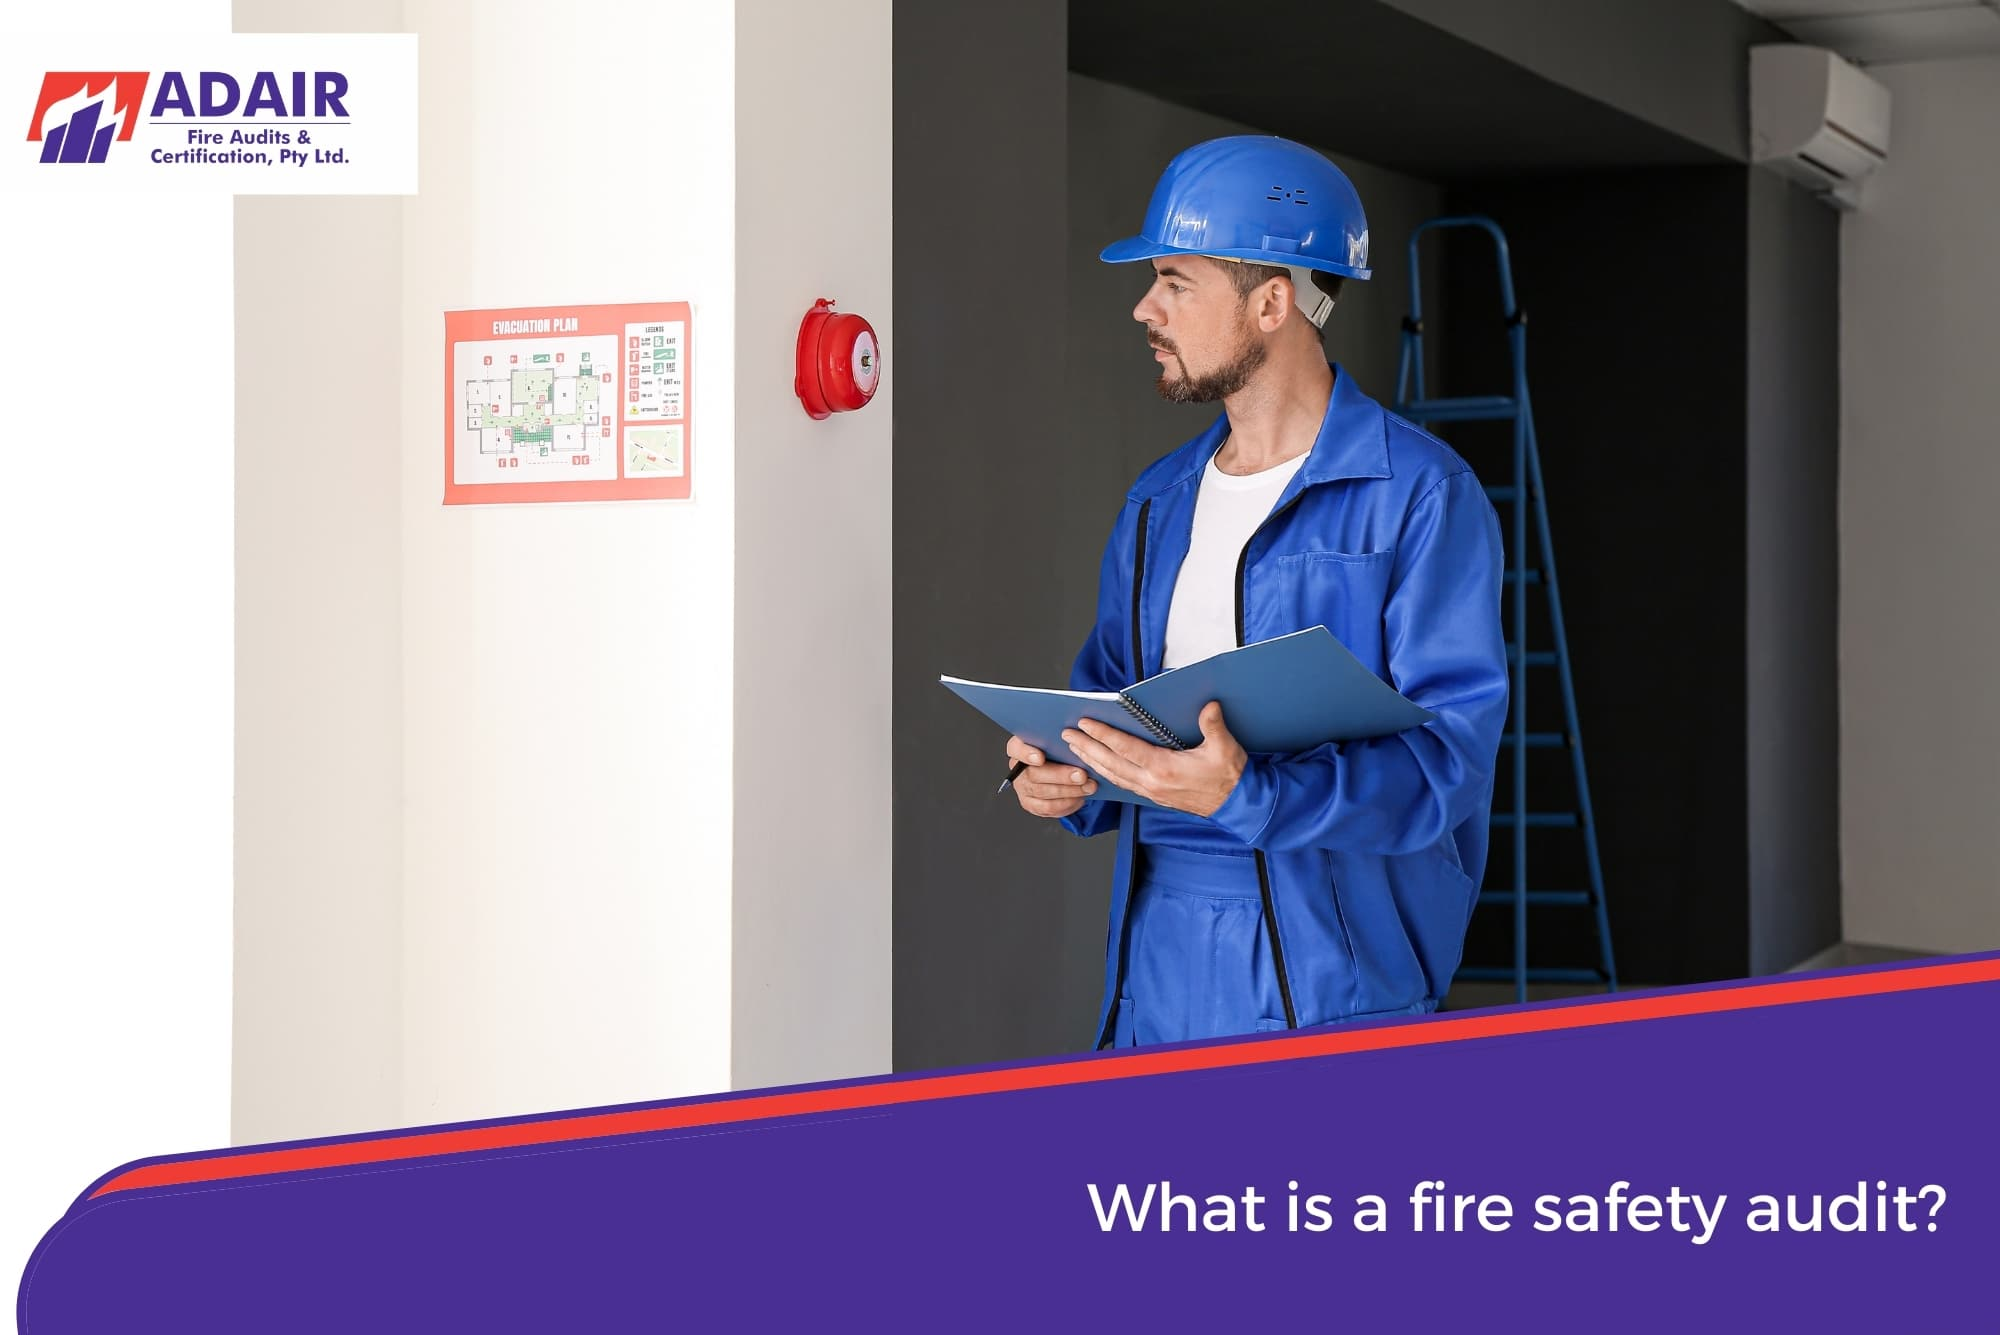 When do you need a fire audit? -